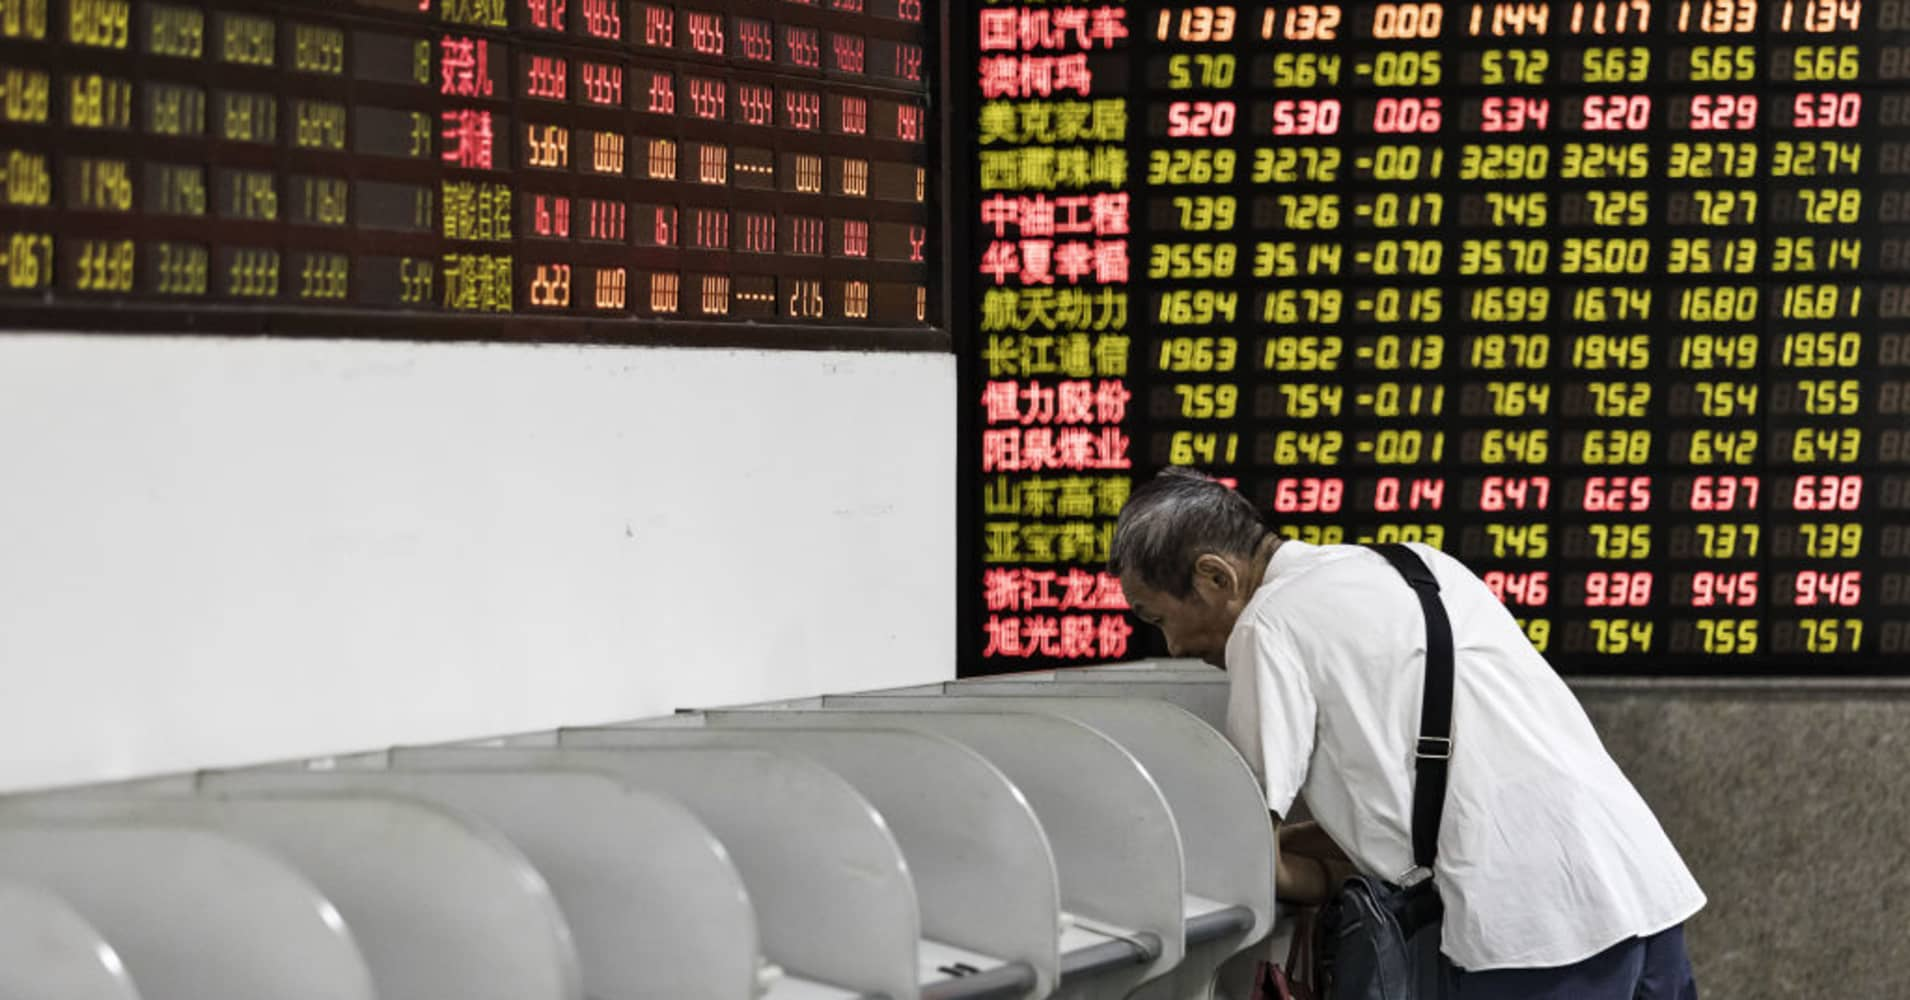 Markets in Asia close mostly higher after Caixin PMI beat forecasts